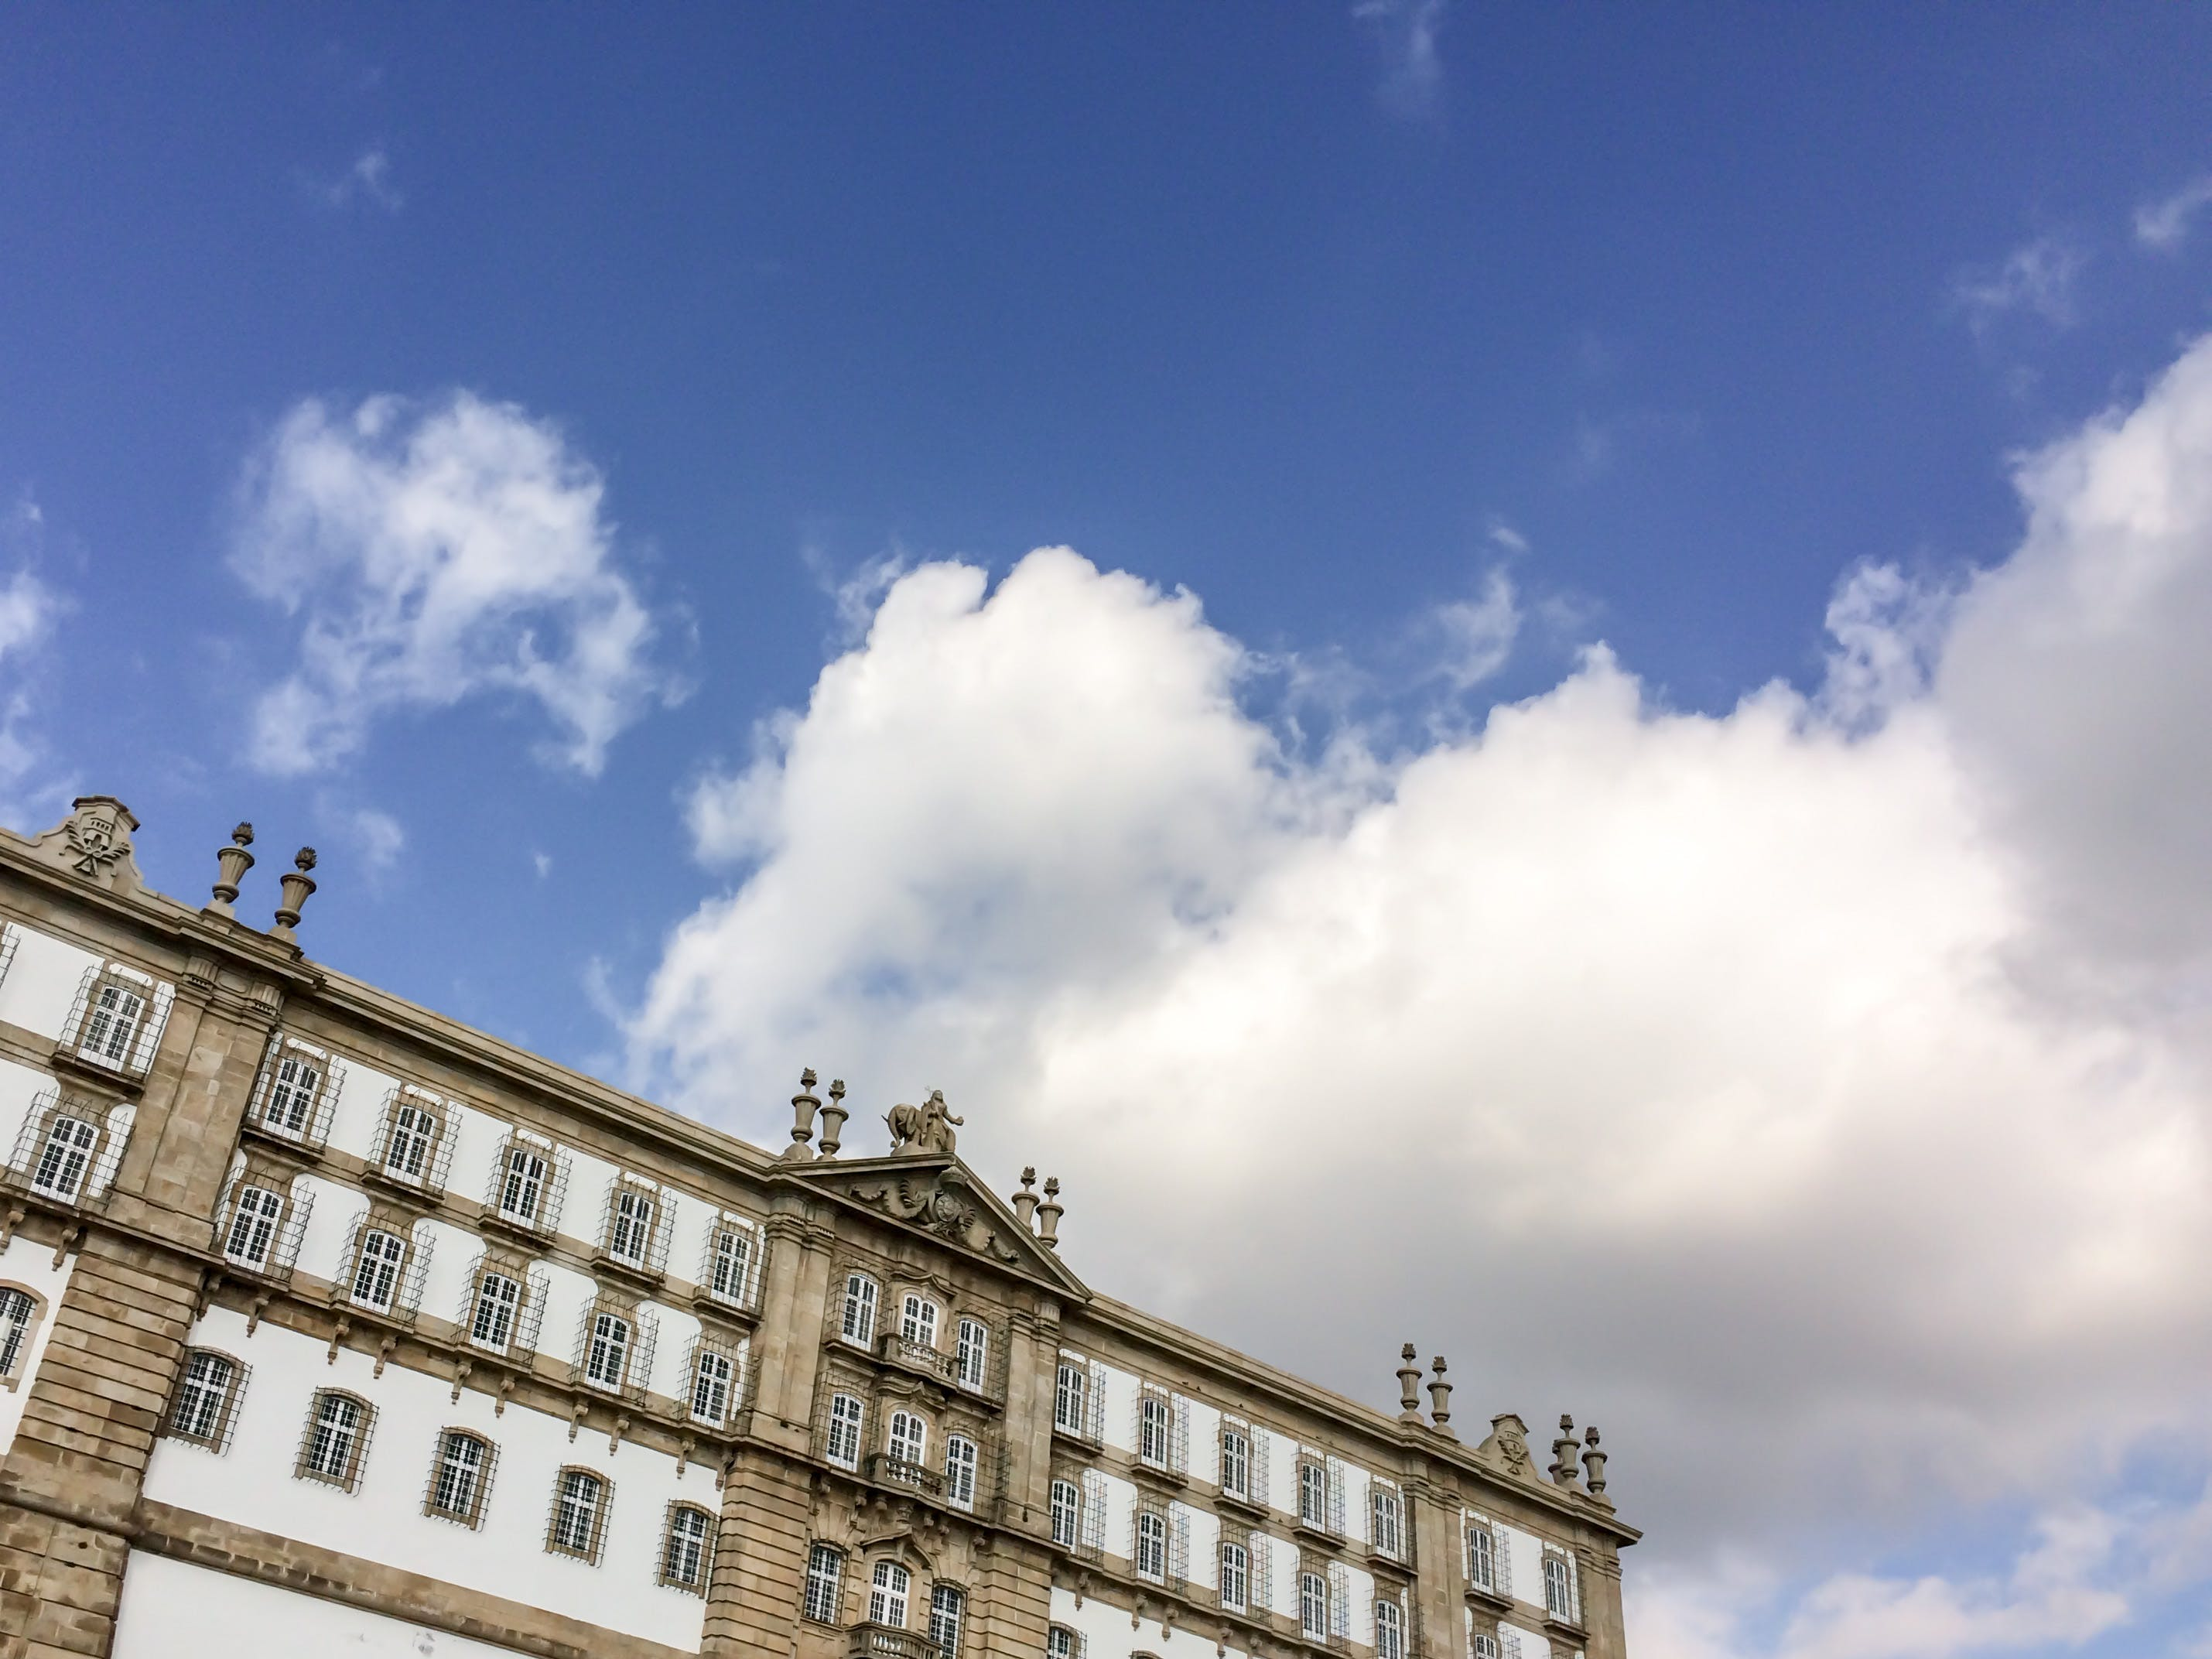 Free stock photo of architecture, blue sky, building, city